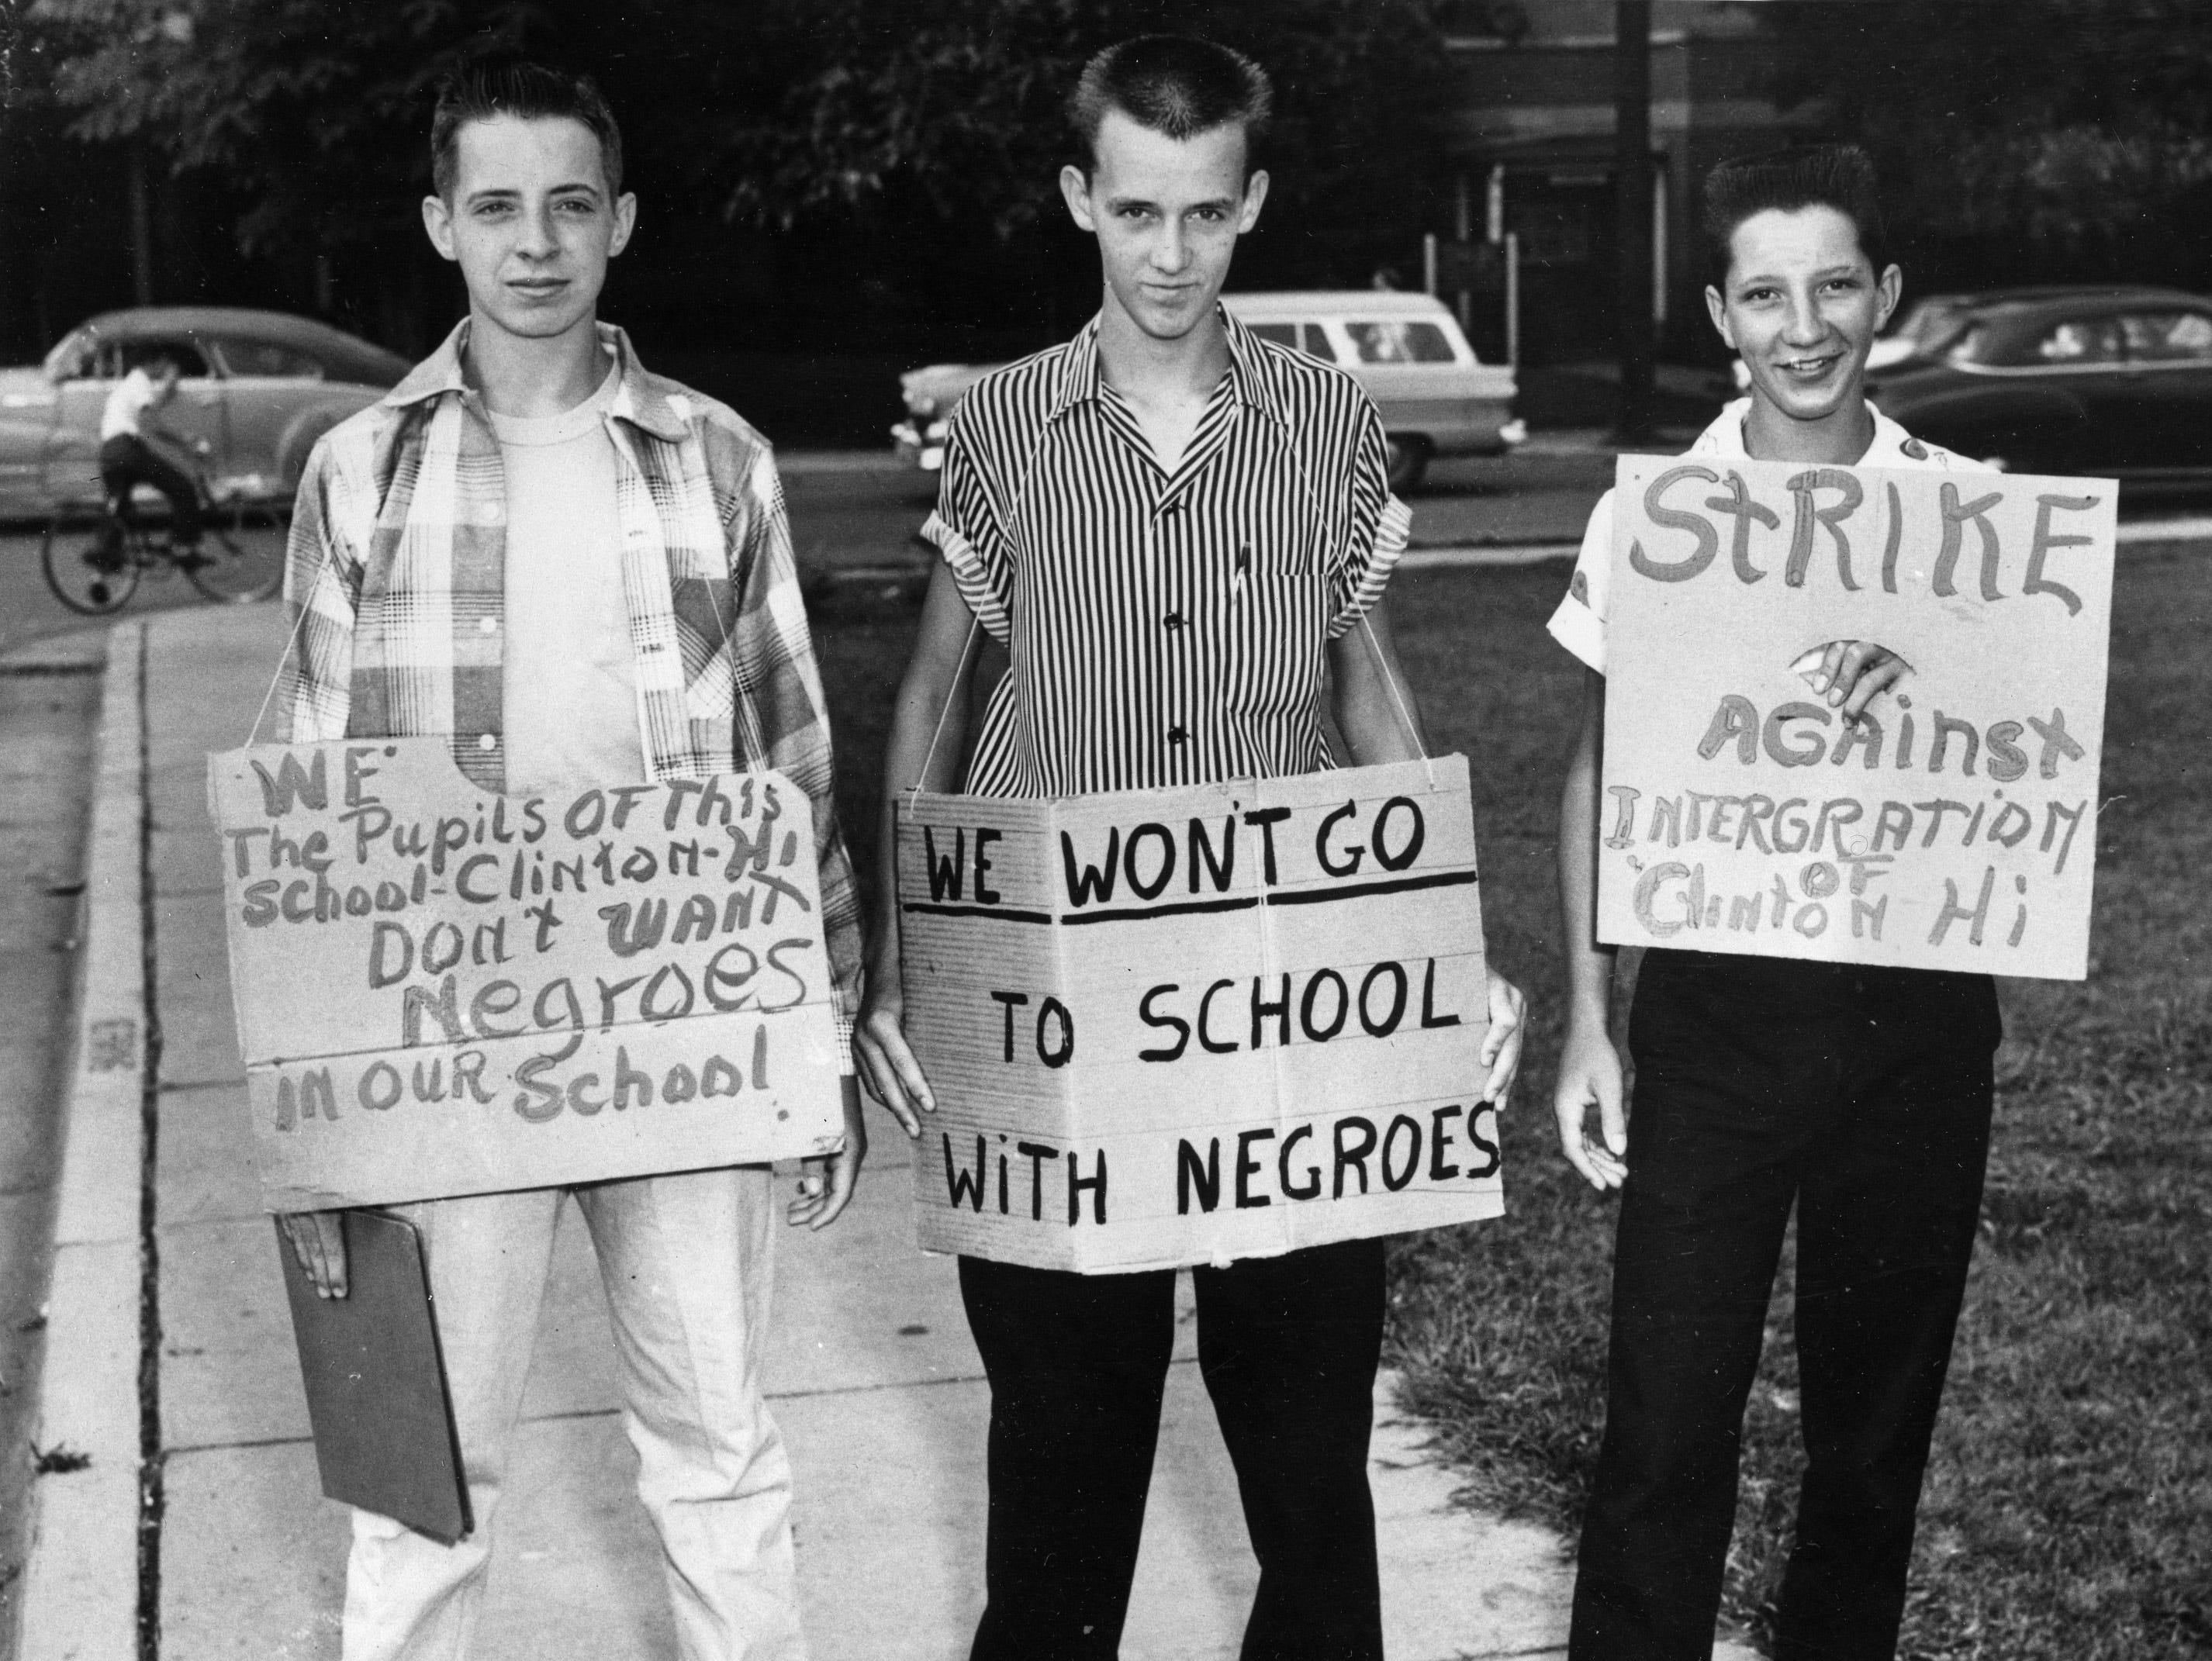 Three students at Clinton High School picket their school as it became the first state-supported school in Tennessee to integrate, Aug. 27, 1956.  The boys are, from left, Buddy Trammell, Max Stiles and Tommy Sanders.  Trammell and Sanders later discarded the pro-segregation signs and reported to classes.  (AP Photo)